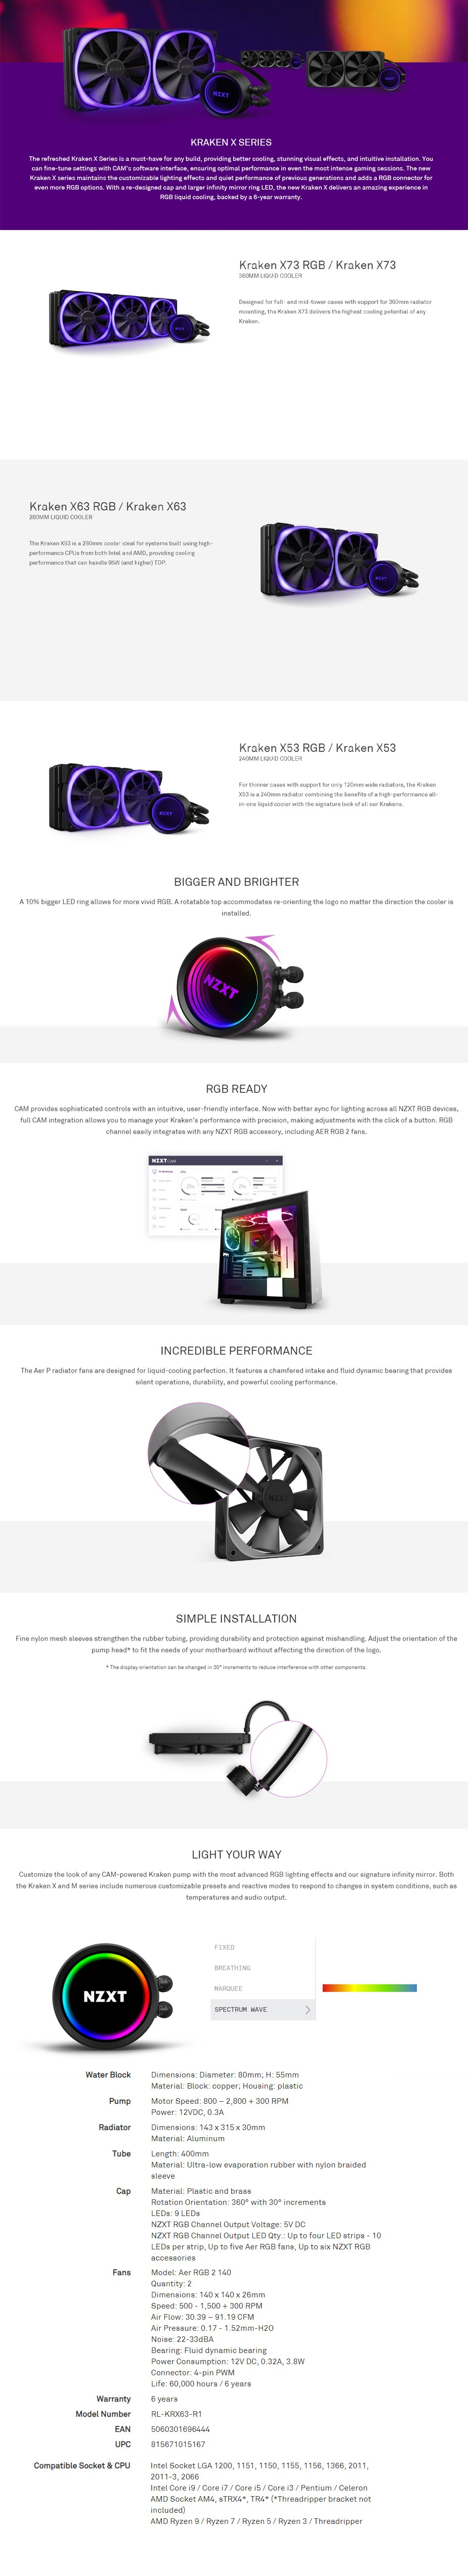 NZXT Kraken X63 280mm RGB AIO Liquid CPU Cooler - Overview 1